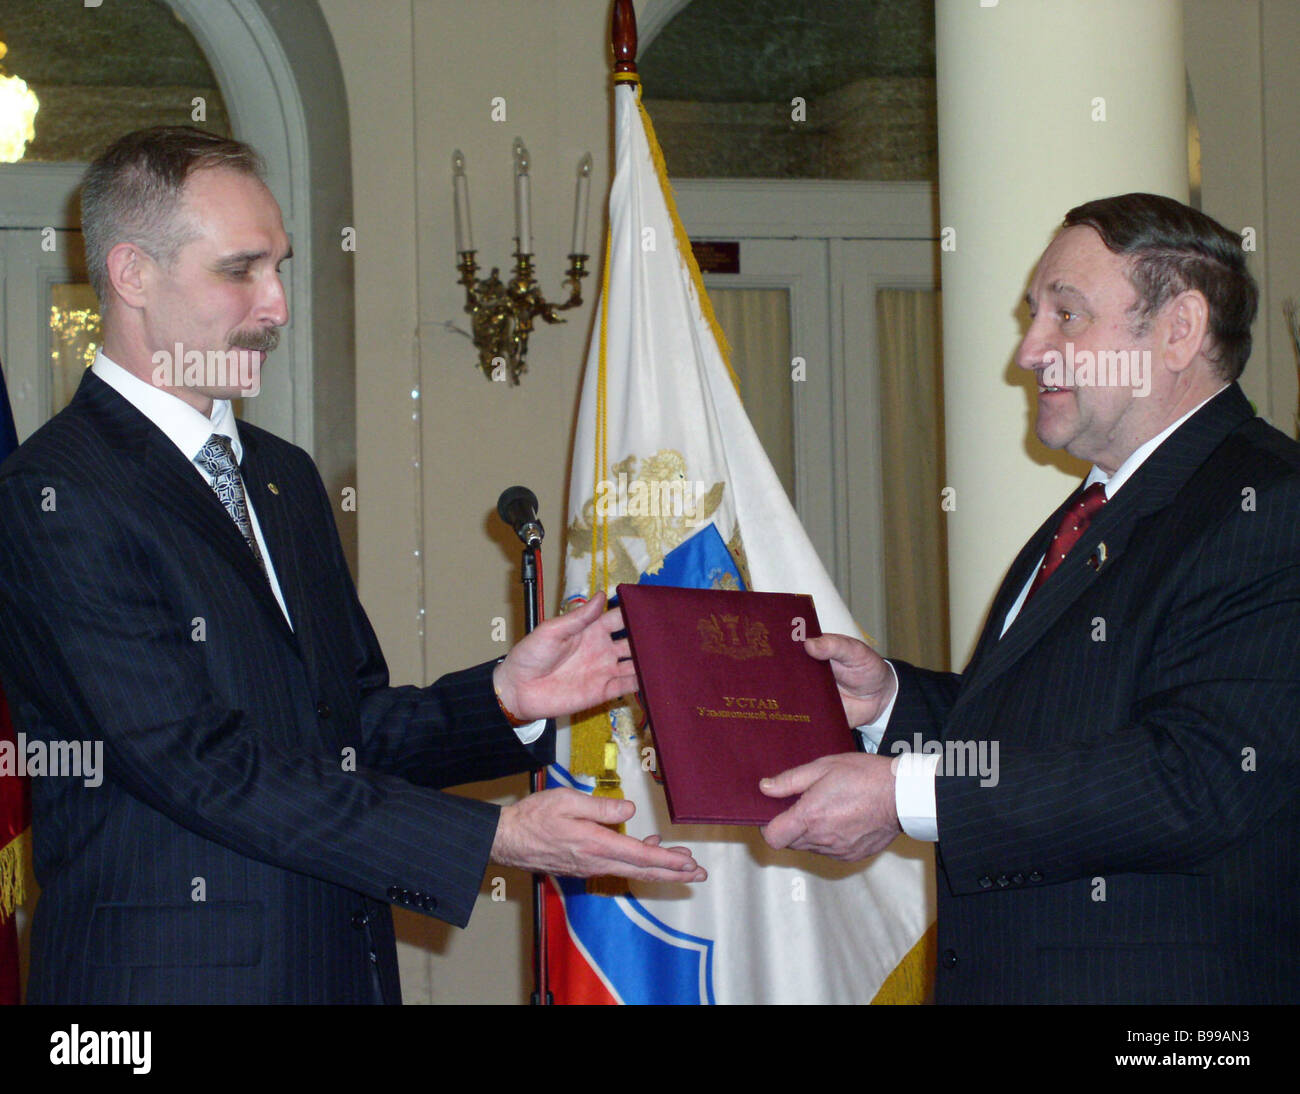 Ulyanovsk region governor Sergei Morozov left accepts the Ulyanovsk region Charter from the chairman of the Regional - Stock Image